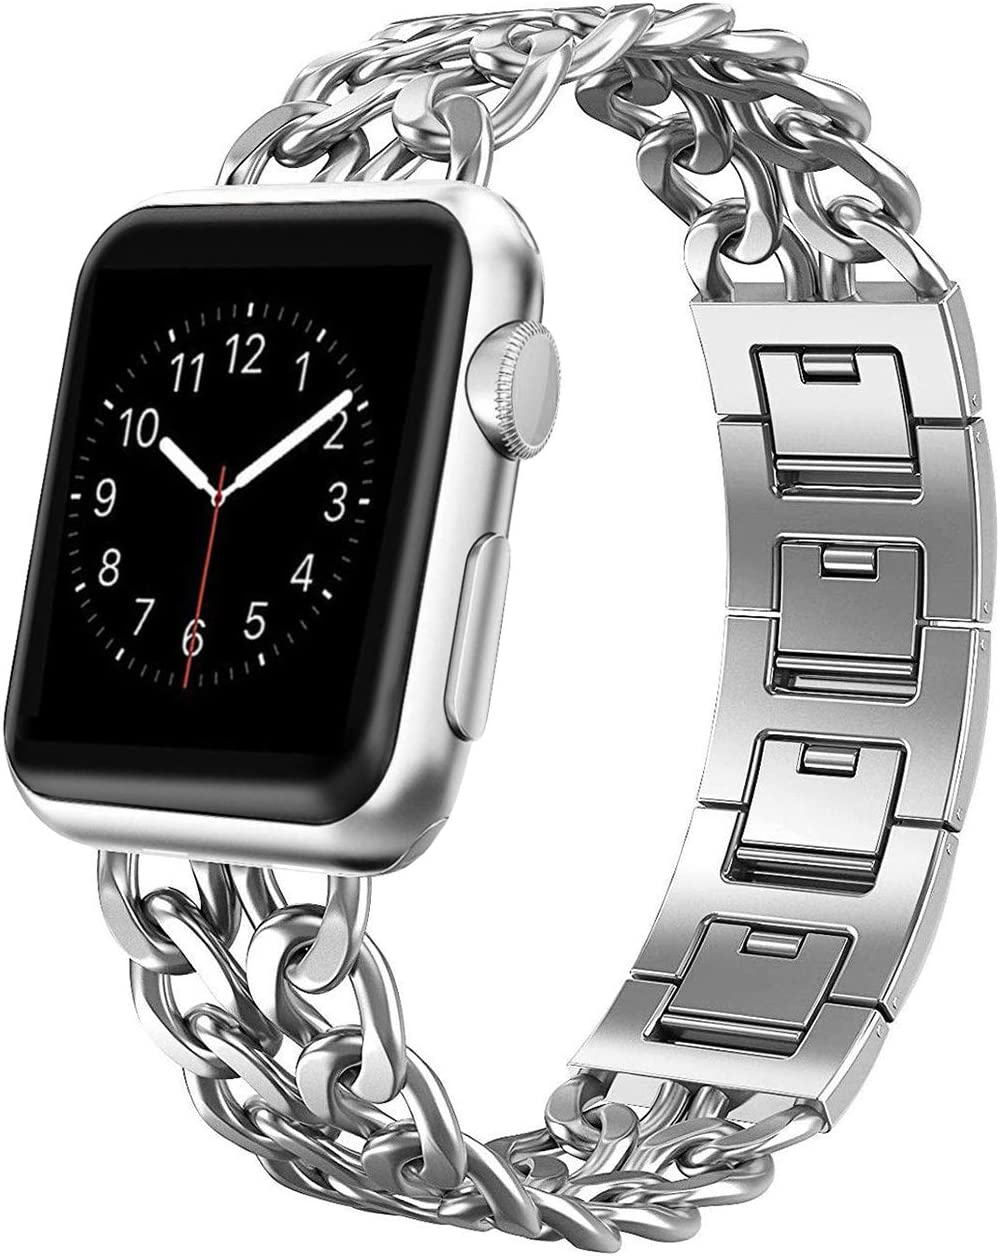 Apple Watch Band, Aokay 38mm Stainless Steel Metal Cowboy Chain Band for Apple Watch Series 3 Series 2 Series 1 Sport and Edition 38mm, Silver